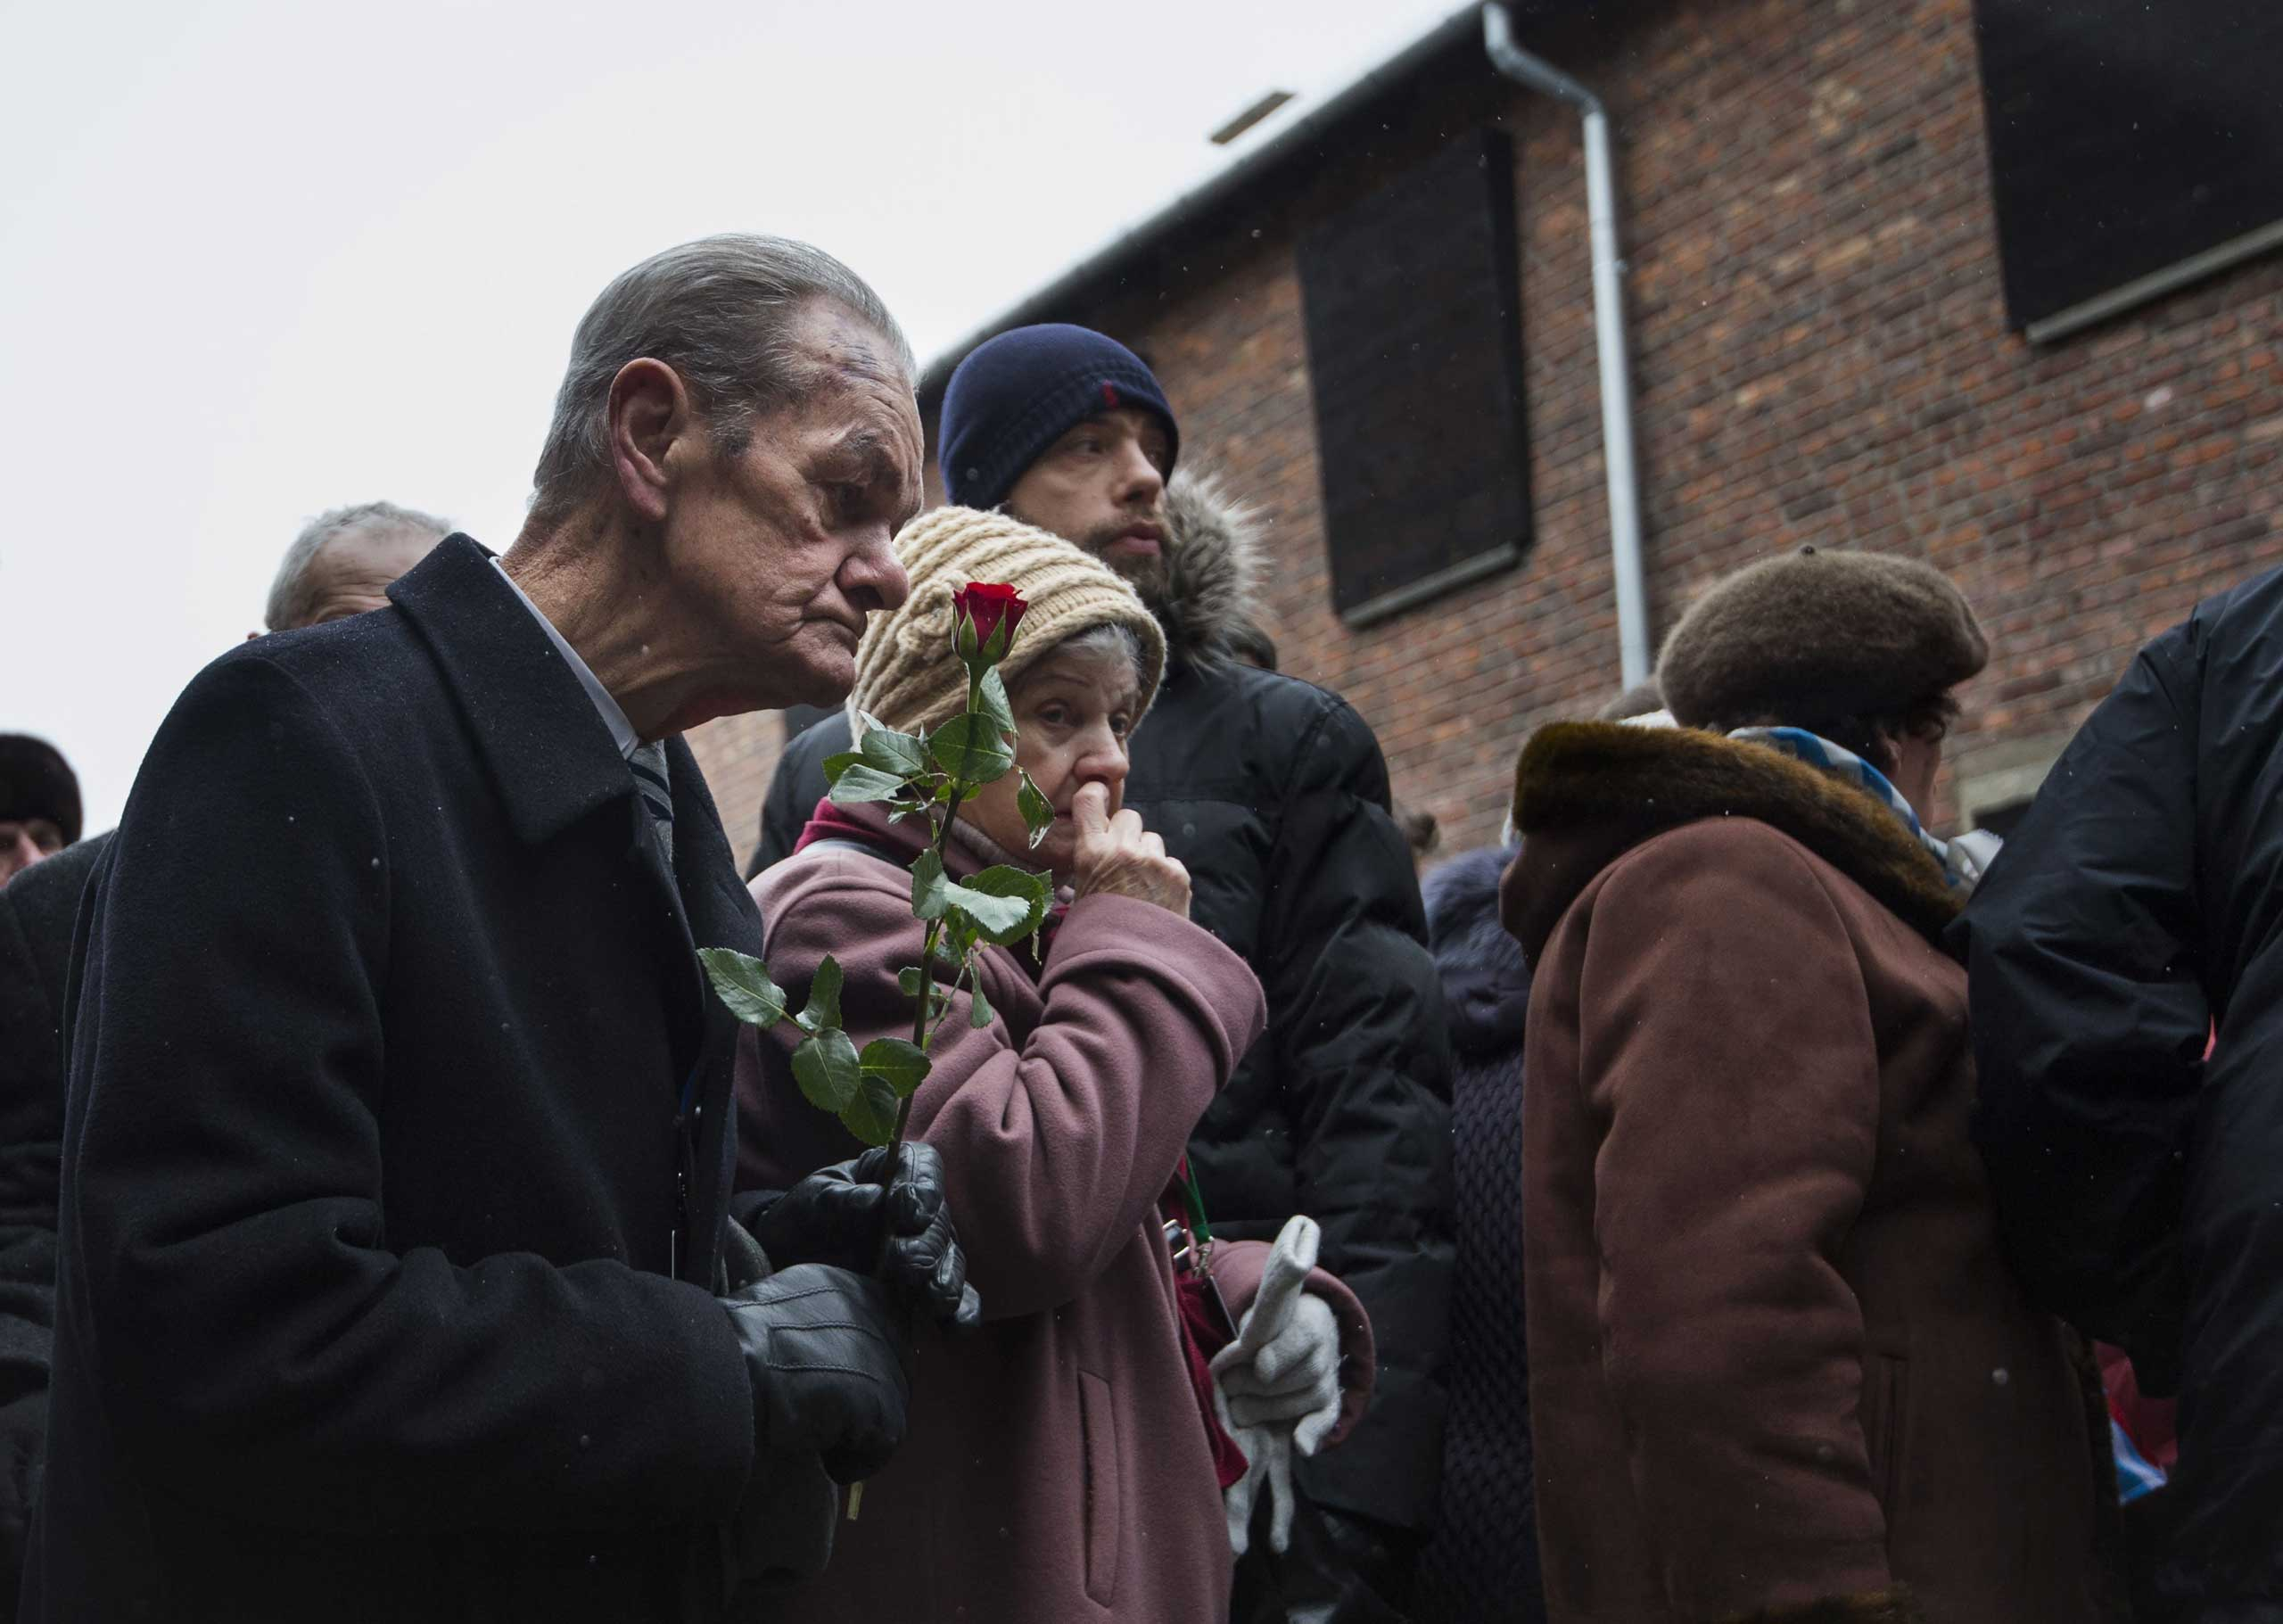 Holocaust survivors pay tribute to fallen comrades at the  death wall  execution spot in the former Auschwitz concentration camp in Oswiecim, on the 70th anniversary of the liberation of the Nazi death camp on Jan. 27, 2015.